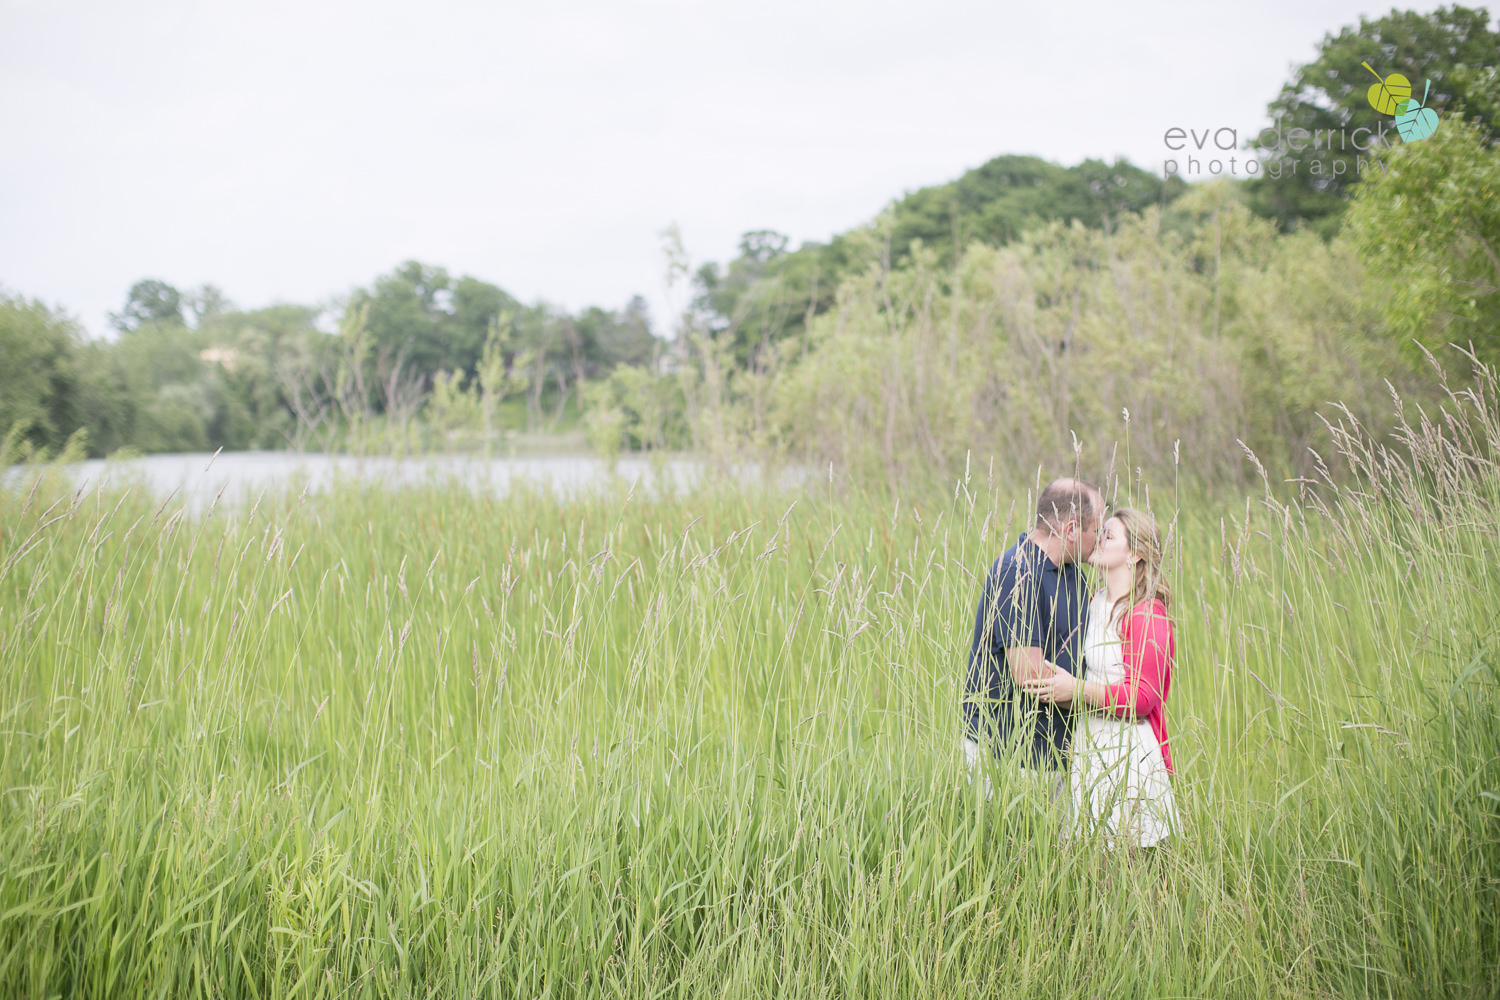 niagara-engagement-photographer-niagara-wedding-photographer-niagara-weddings-niagara-region-wedding-photographer-beach-engagement-session-st-catharines-charles-daly-park-eva-derrick-photography-photo